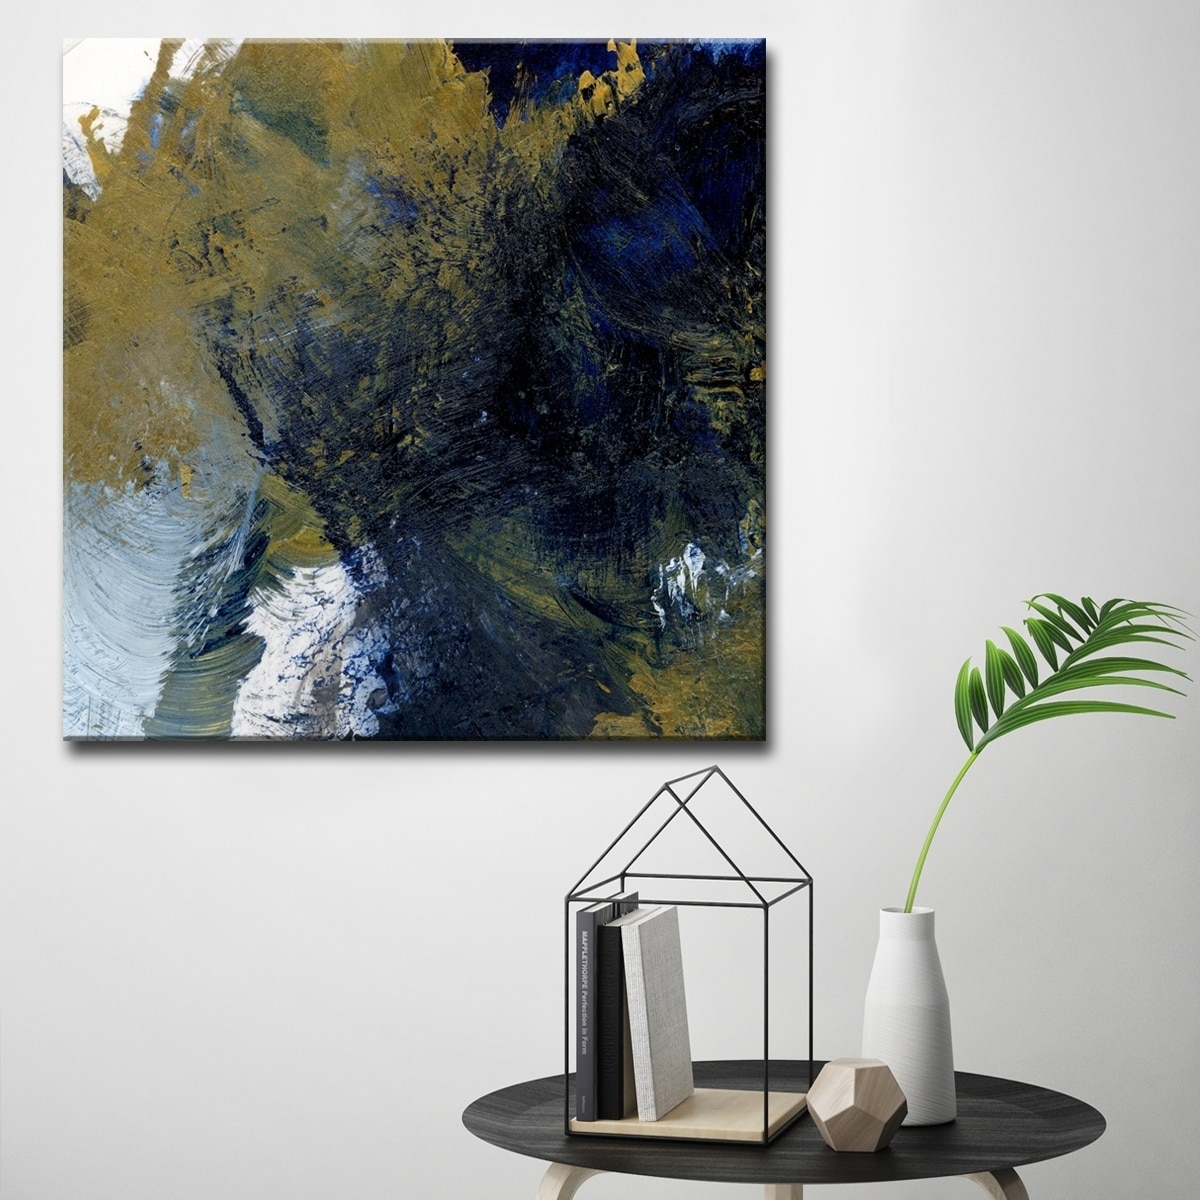 Chaos Abstract Canvas Wall Décor By Karen Moehr On Sale Overstock 20667045